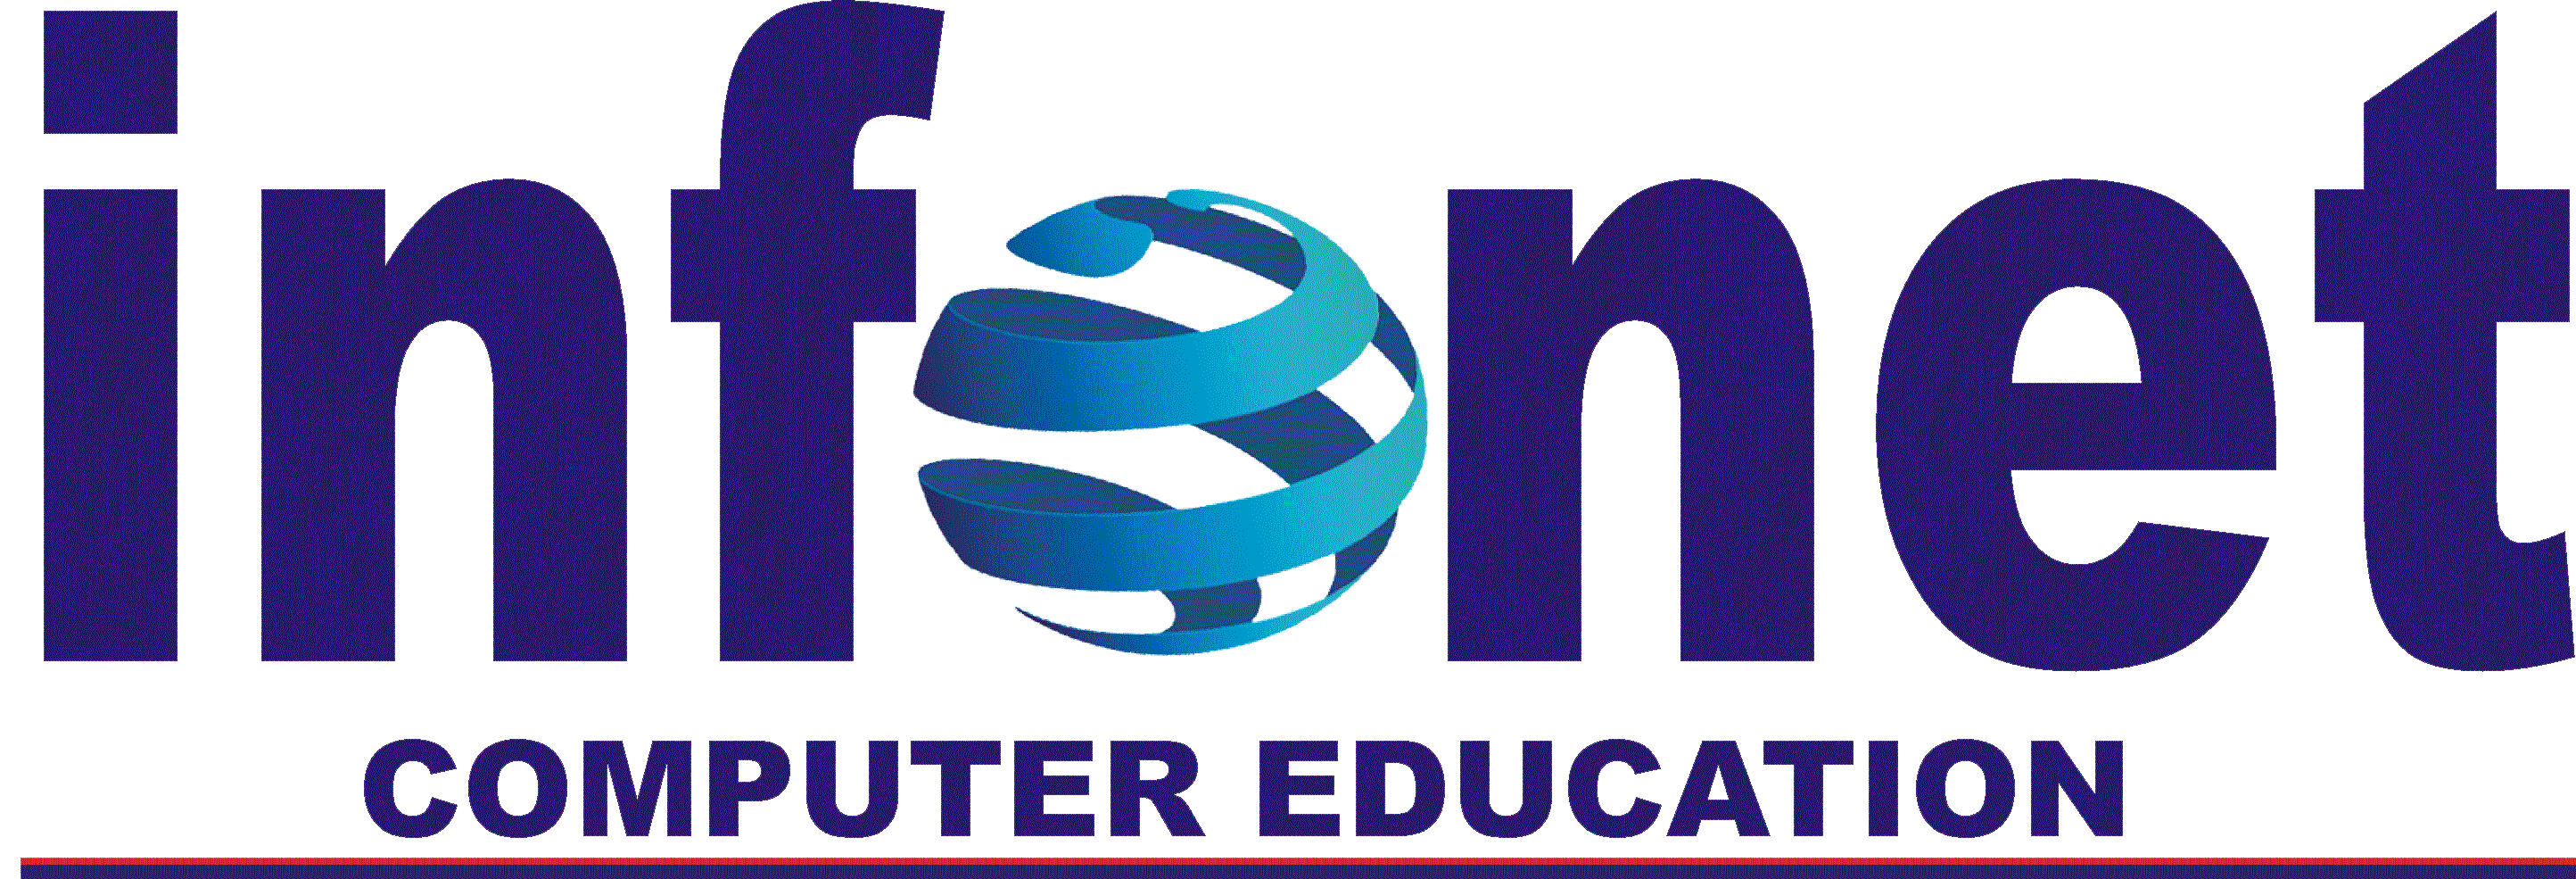 INFONET COMPUTER EDUCATION